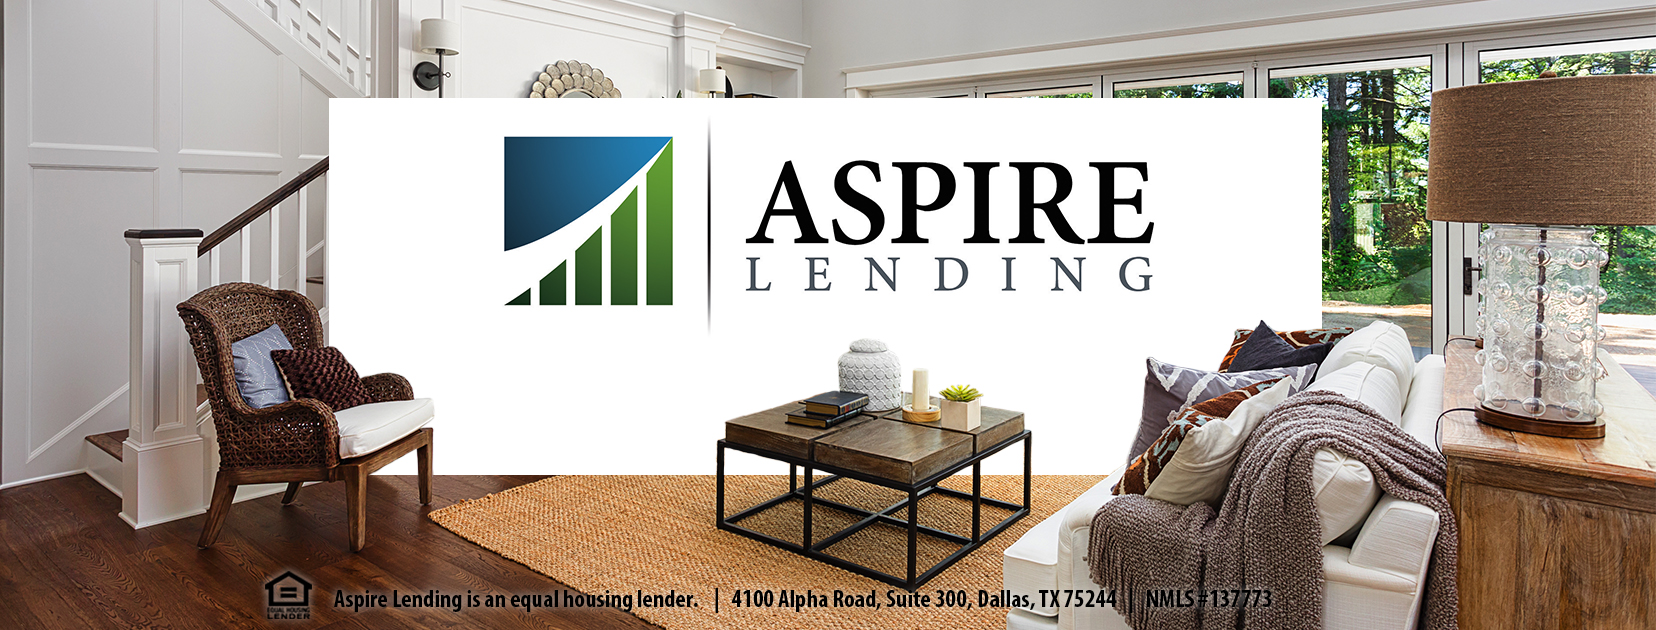 Aspire Lending reviews | Financial Services at 4100 Alpha Road - Dallas TX